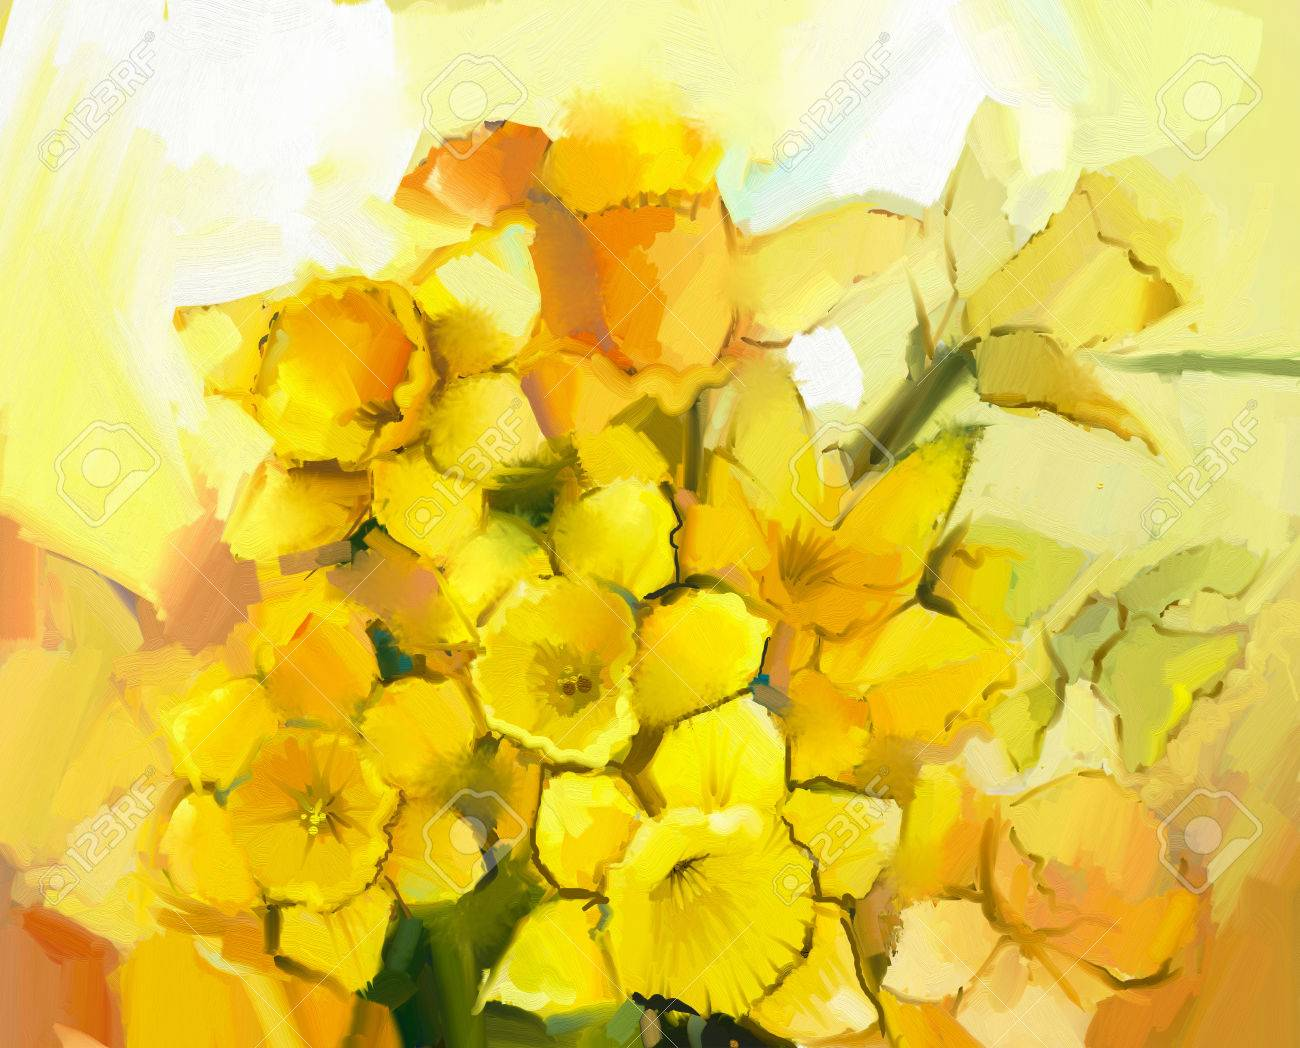 still life of yellow and orange color flowers. oil painting a